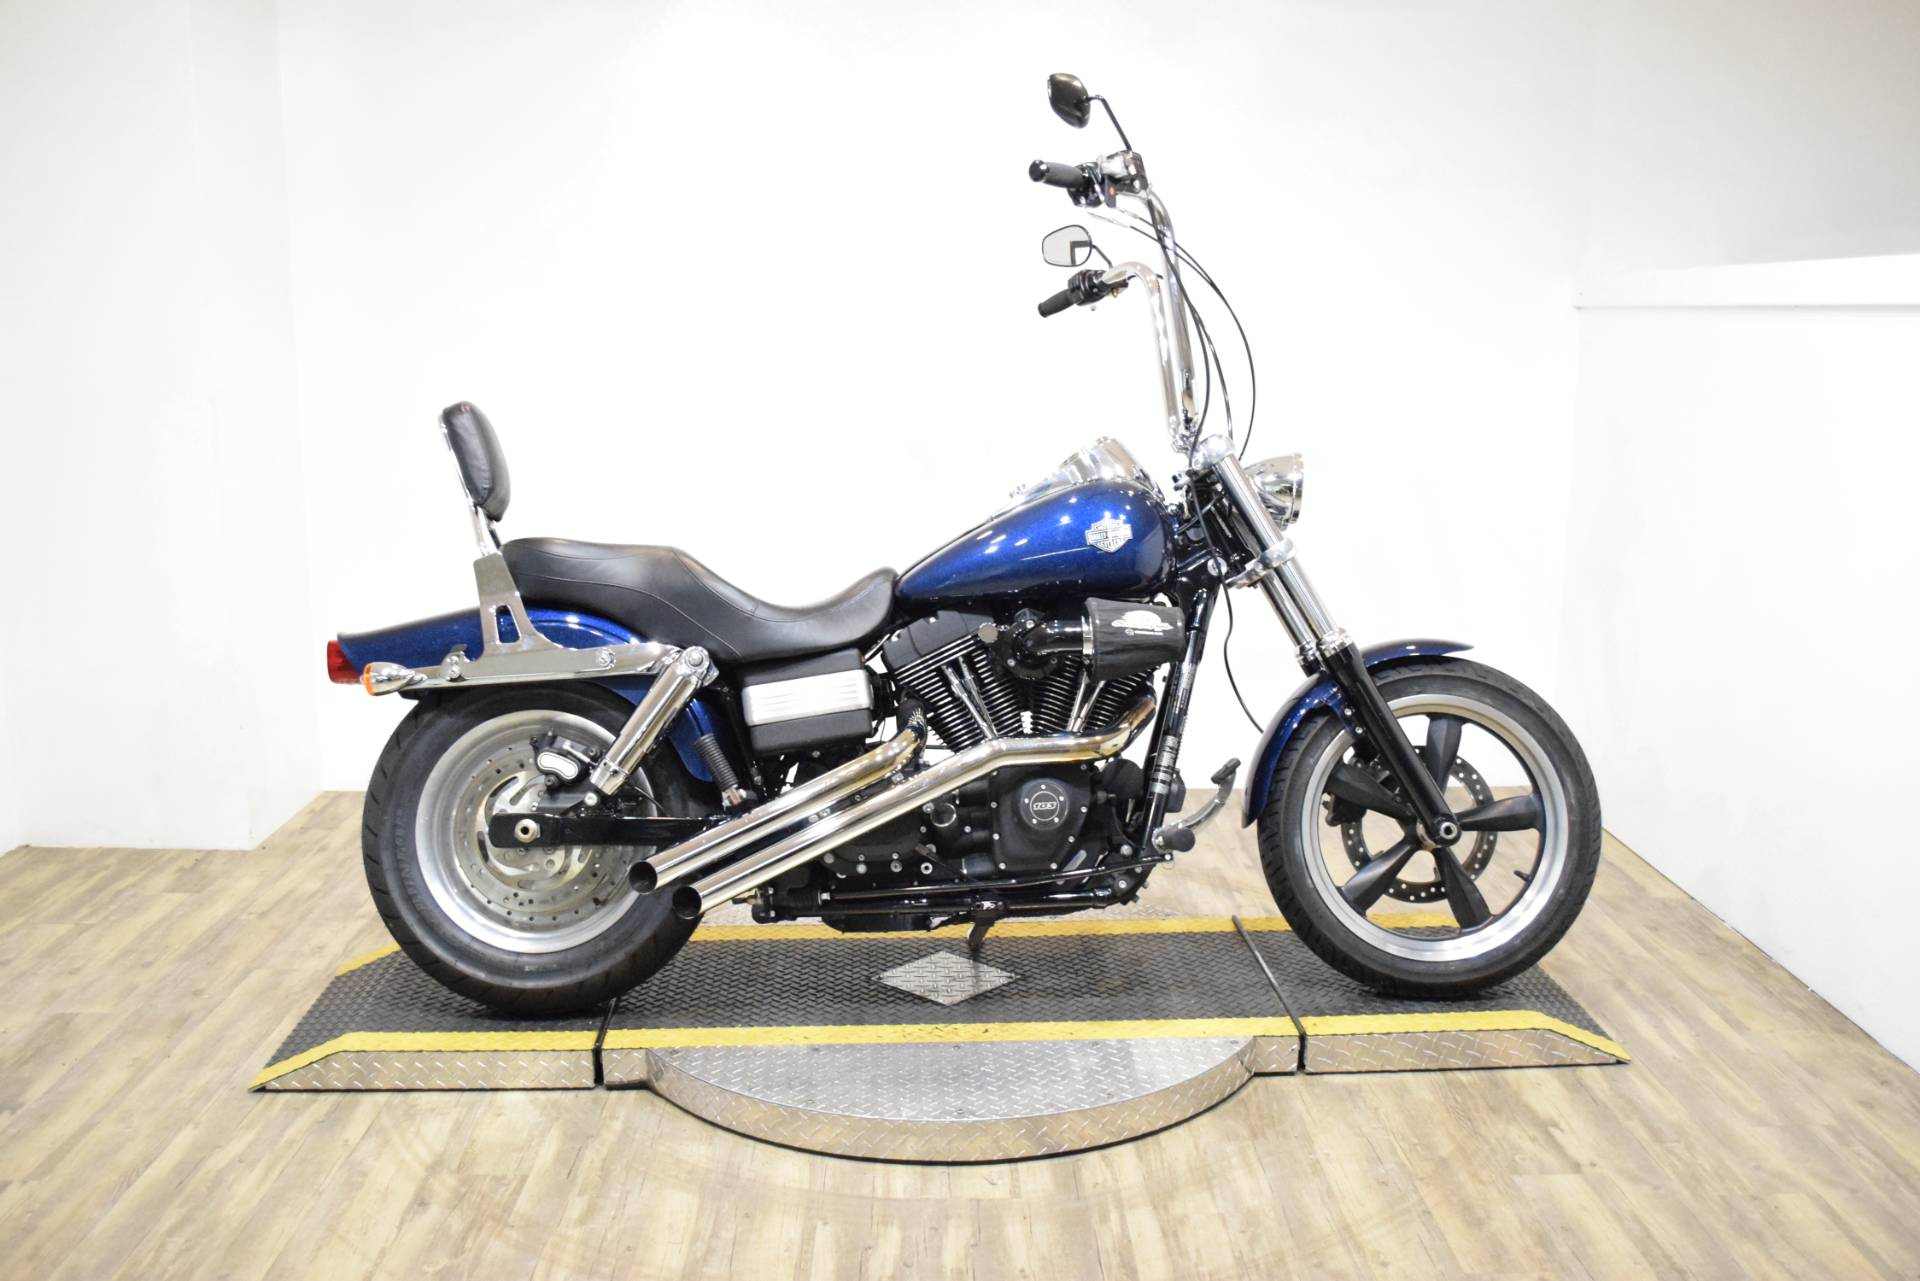 2012 Harley-Davidson Dyna® Fat Bob® in Wauconda, Illinois - Photo 1